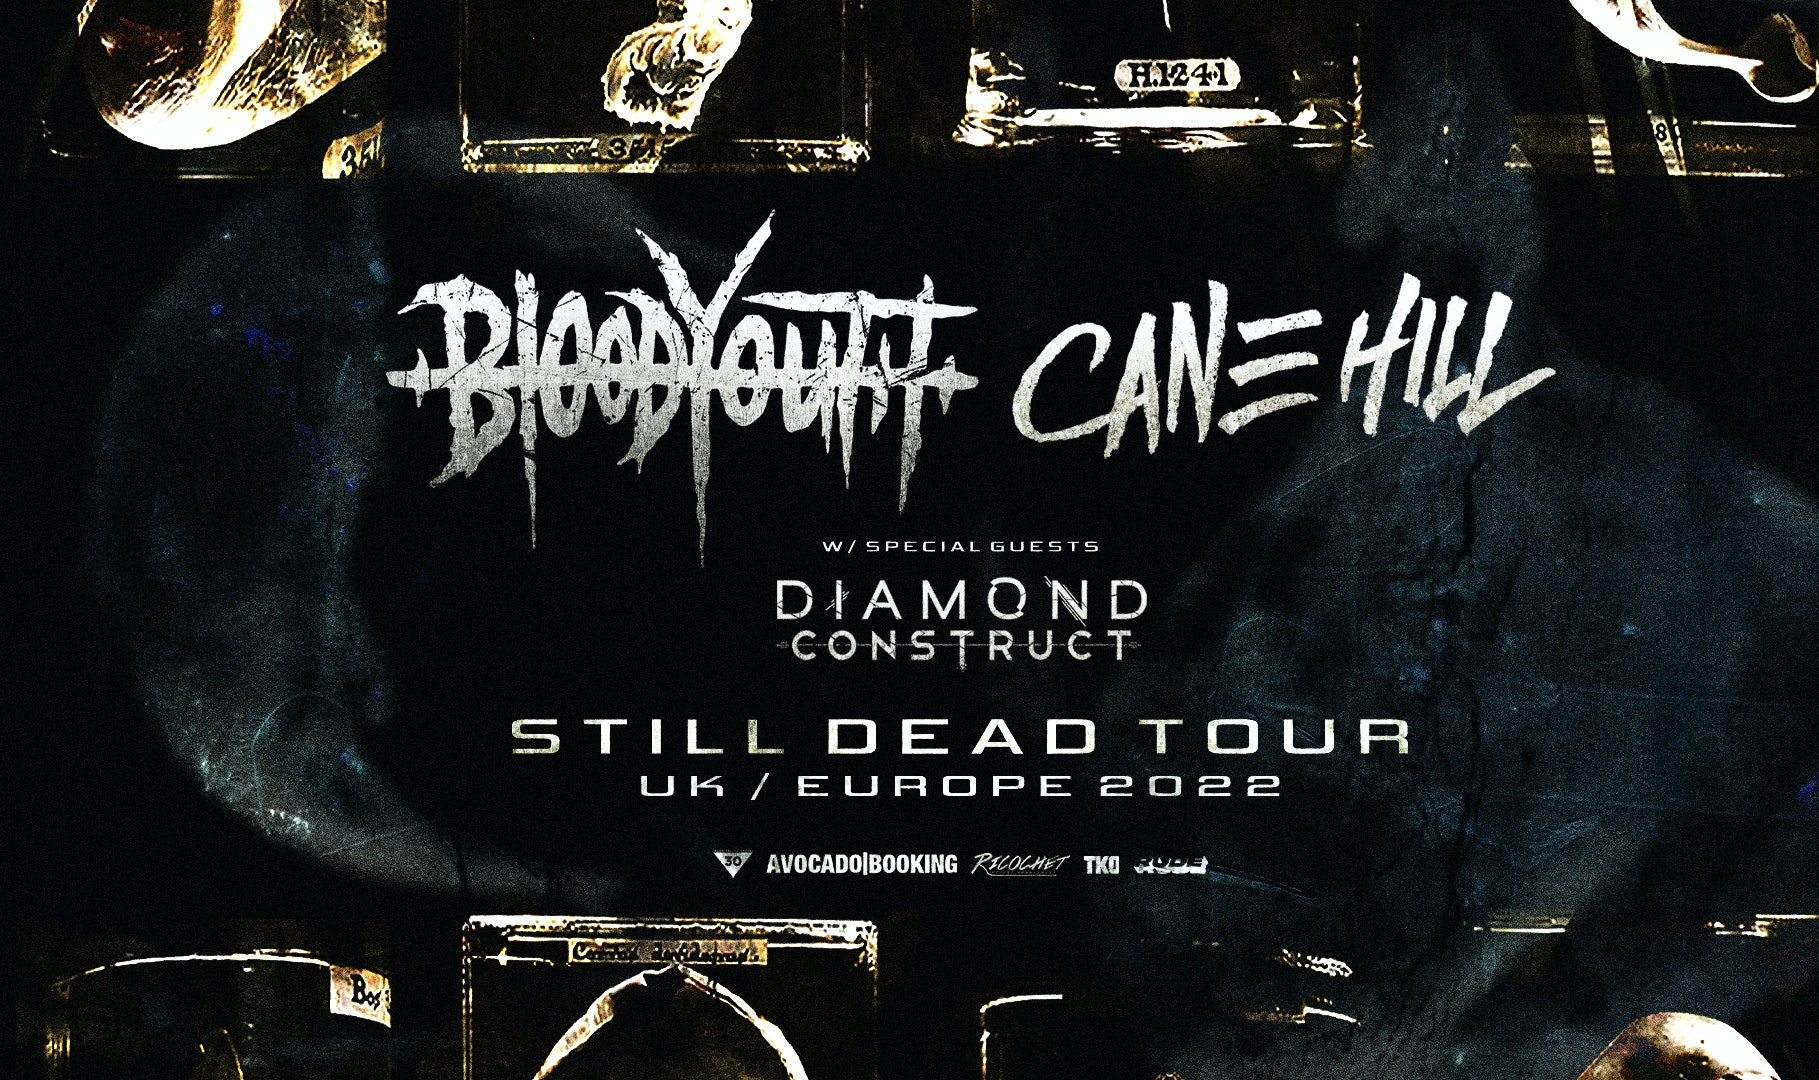 BLOOD YOUTH – CANE HILL (DOUBLE-HEADER)